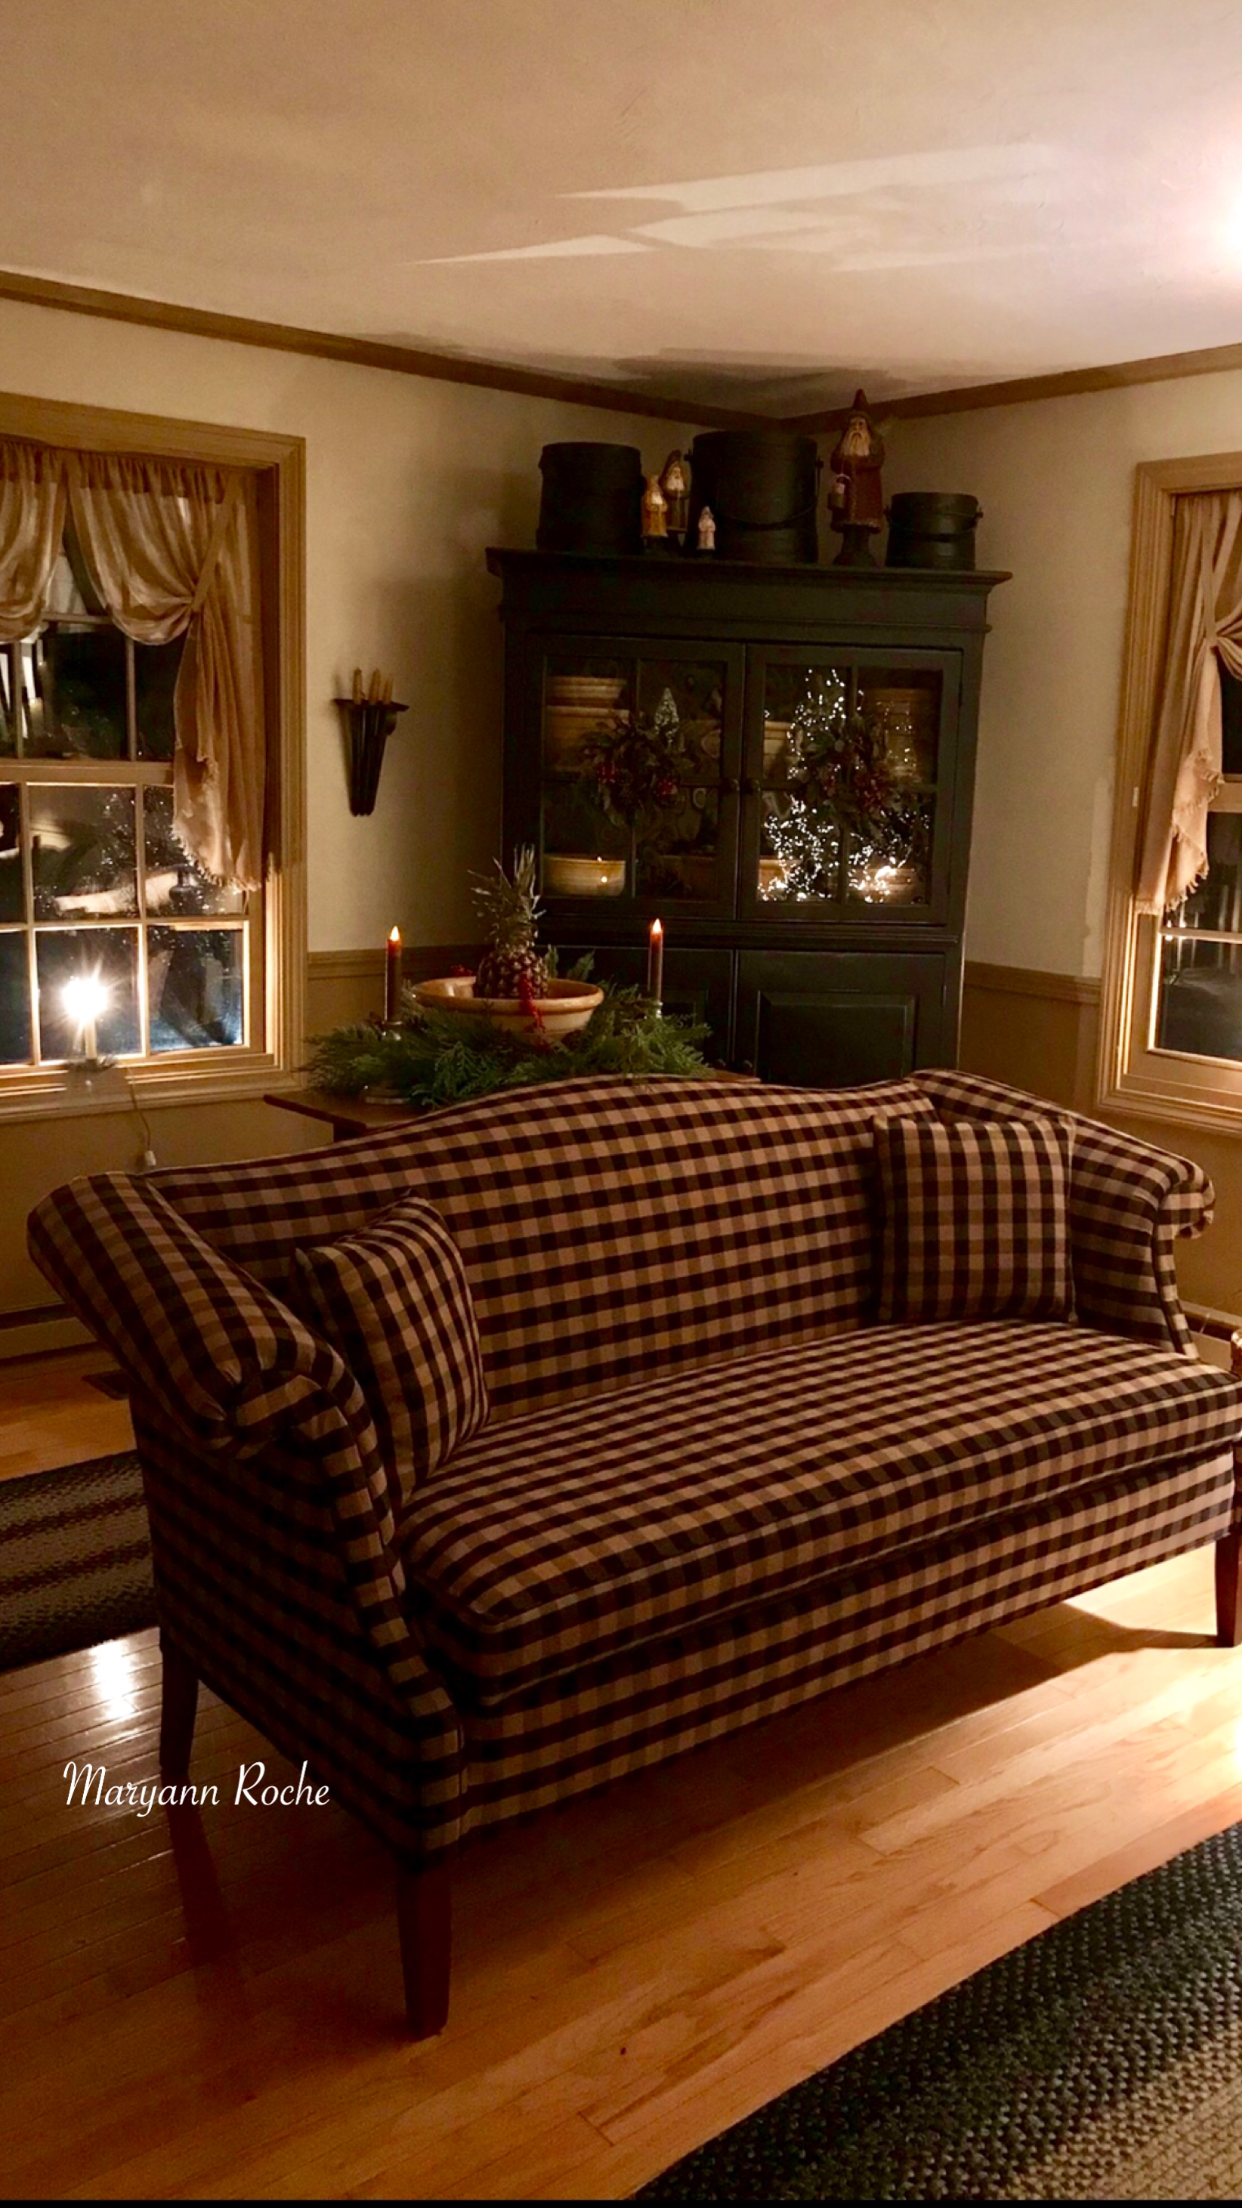 Pin By Sandy Donovan On My Home Primitive Country Living Room Primitive Decorating Country Colonial Living Room